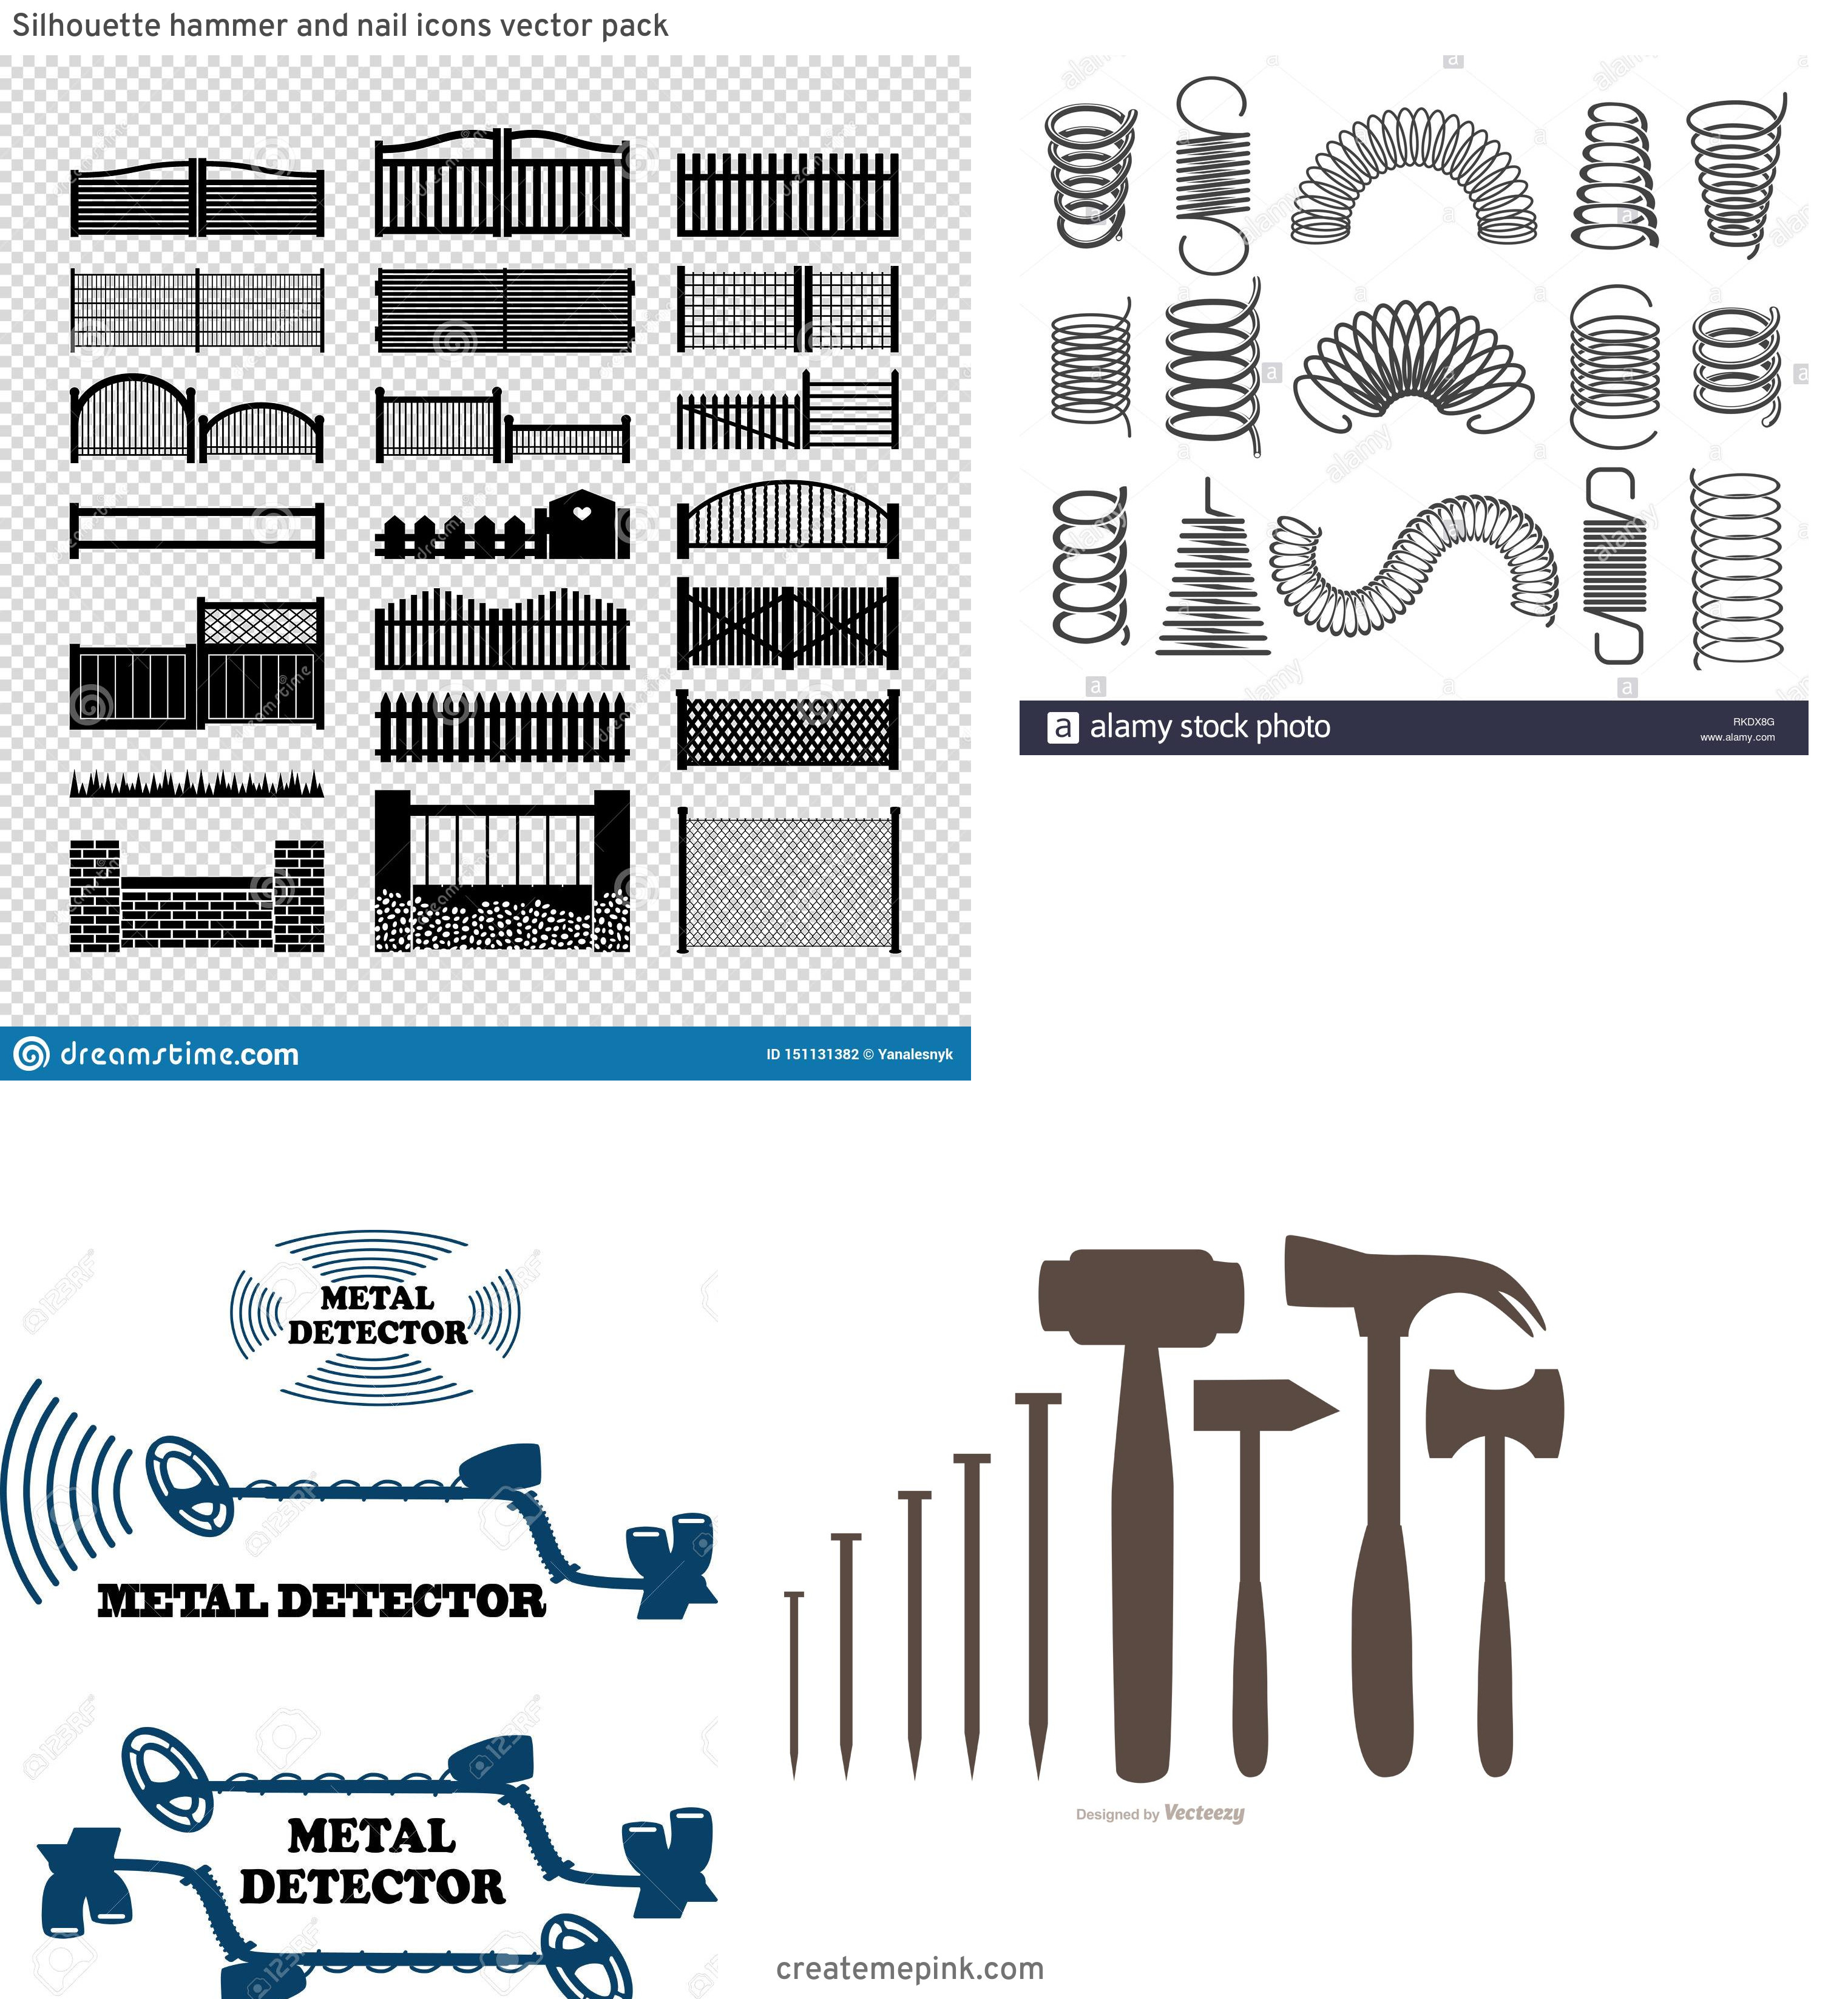 Vector Silhouette Metal Project: Silhouette Hammer And Nail Icons Vector Pack